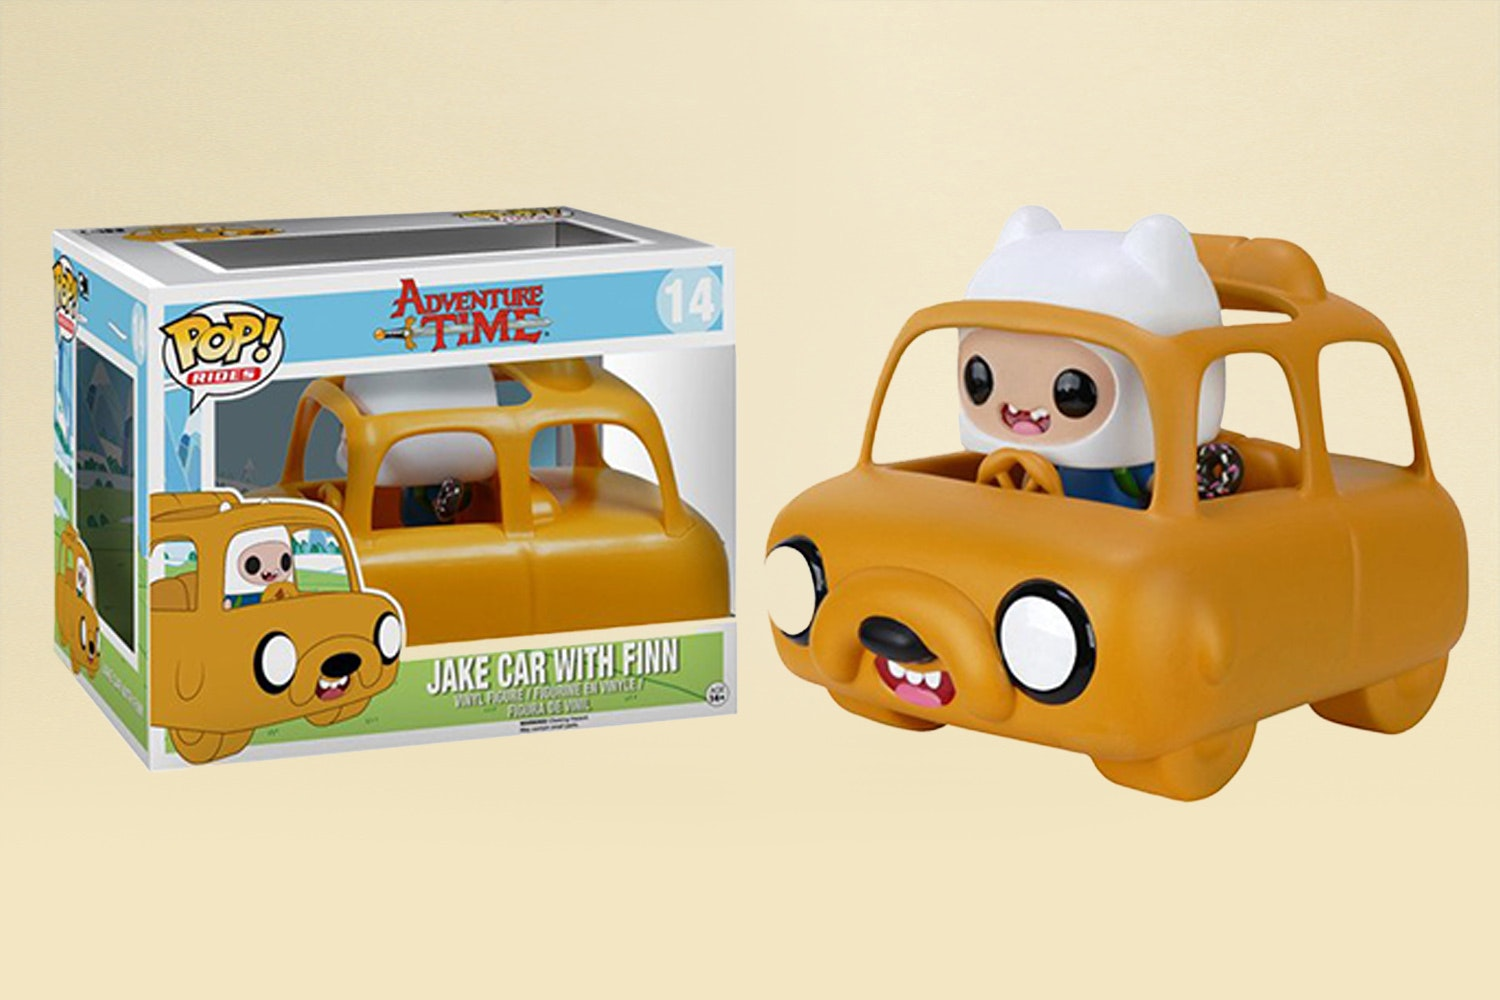 Jake Car with Finn